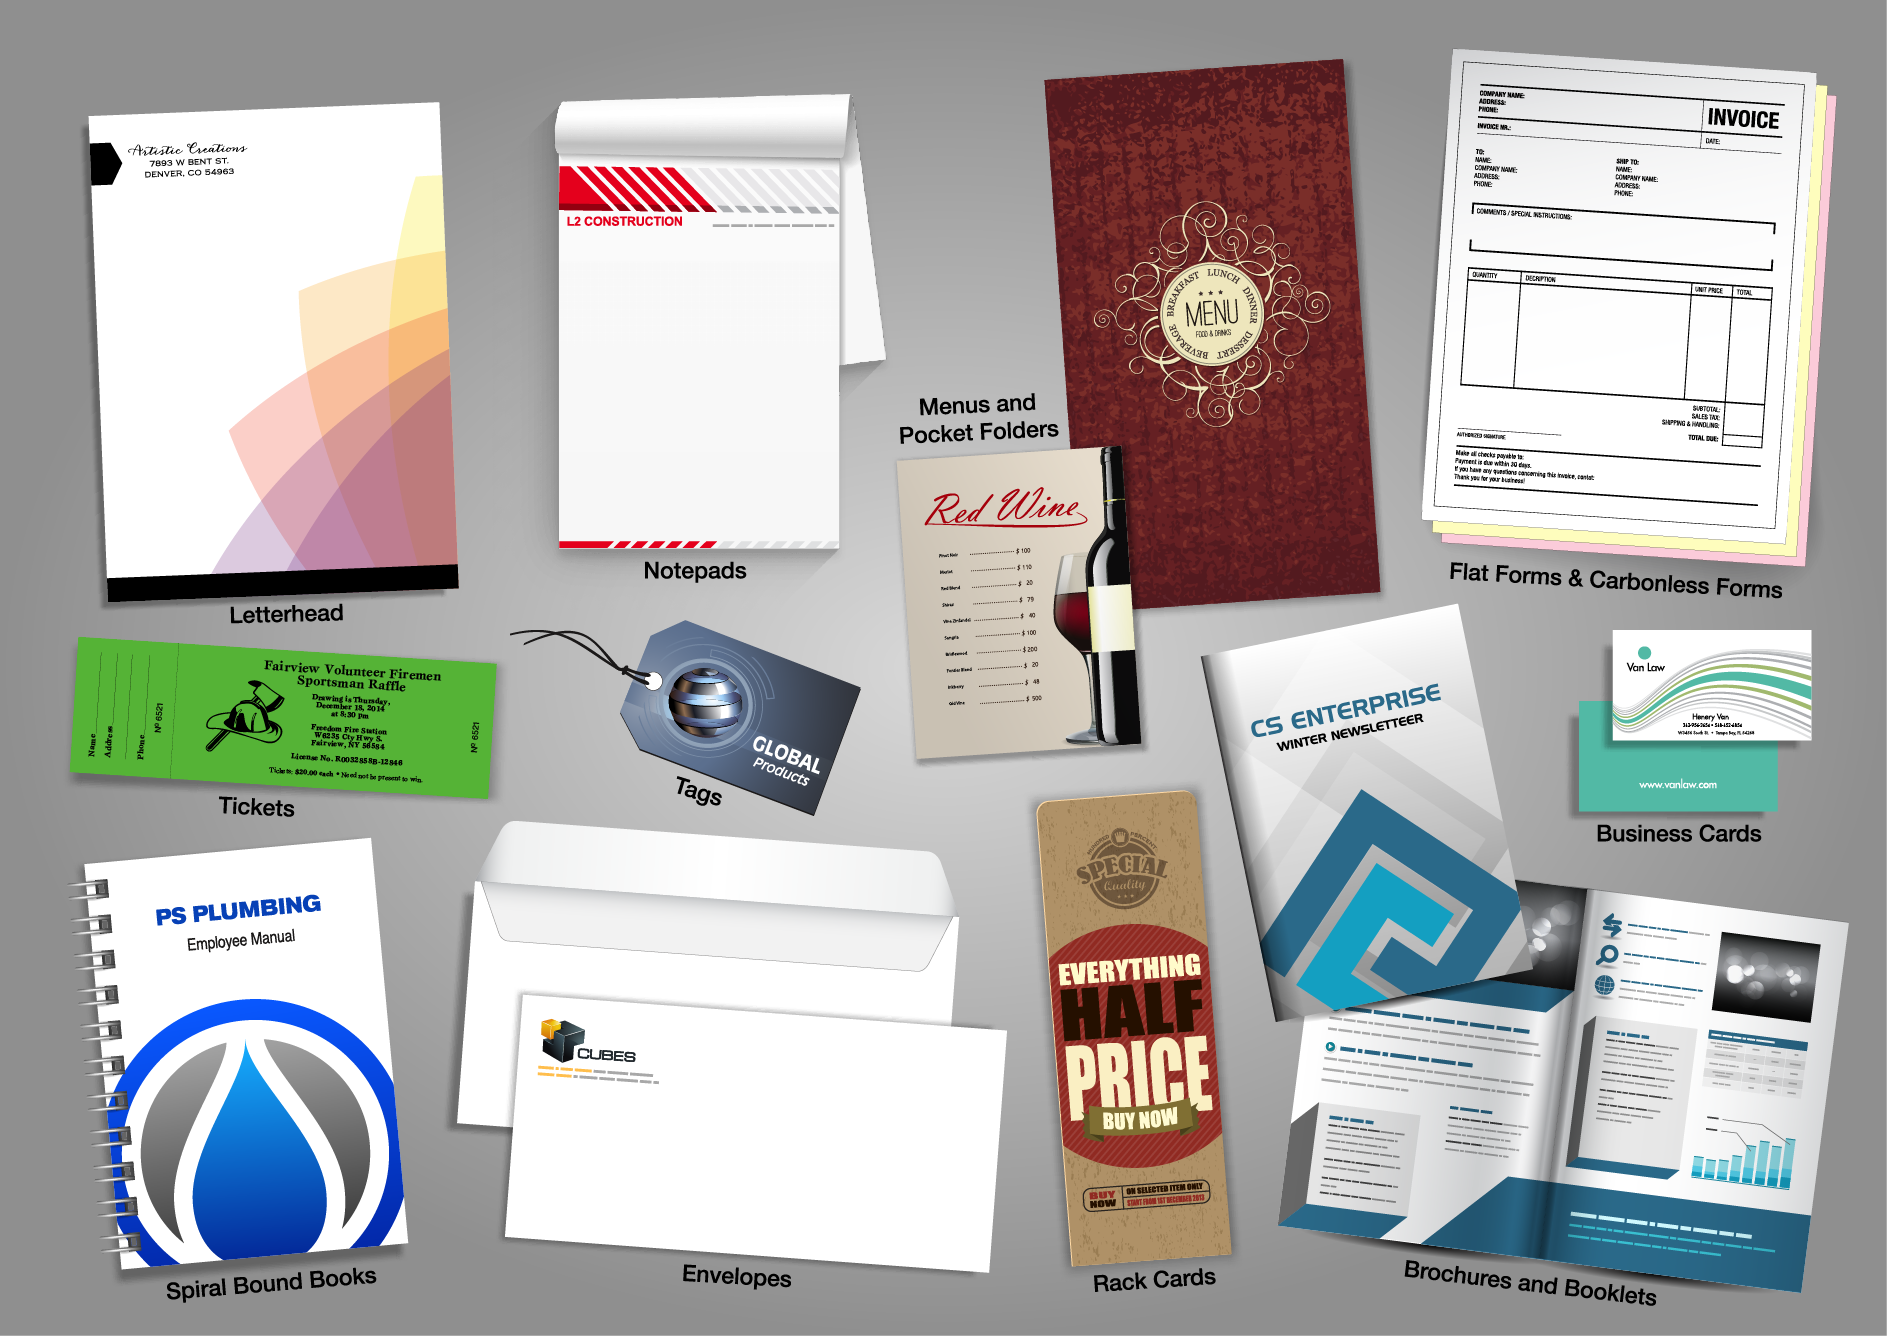 printing, wedding, menus, pocket folders, letterheads,  Envelopes, RackCards, Brochures and Booklets, Spiral bound Books, forms, calling cards, letter heads